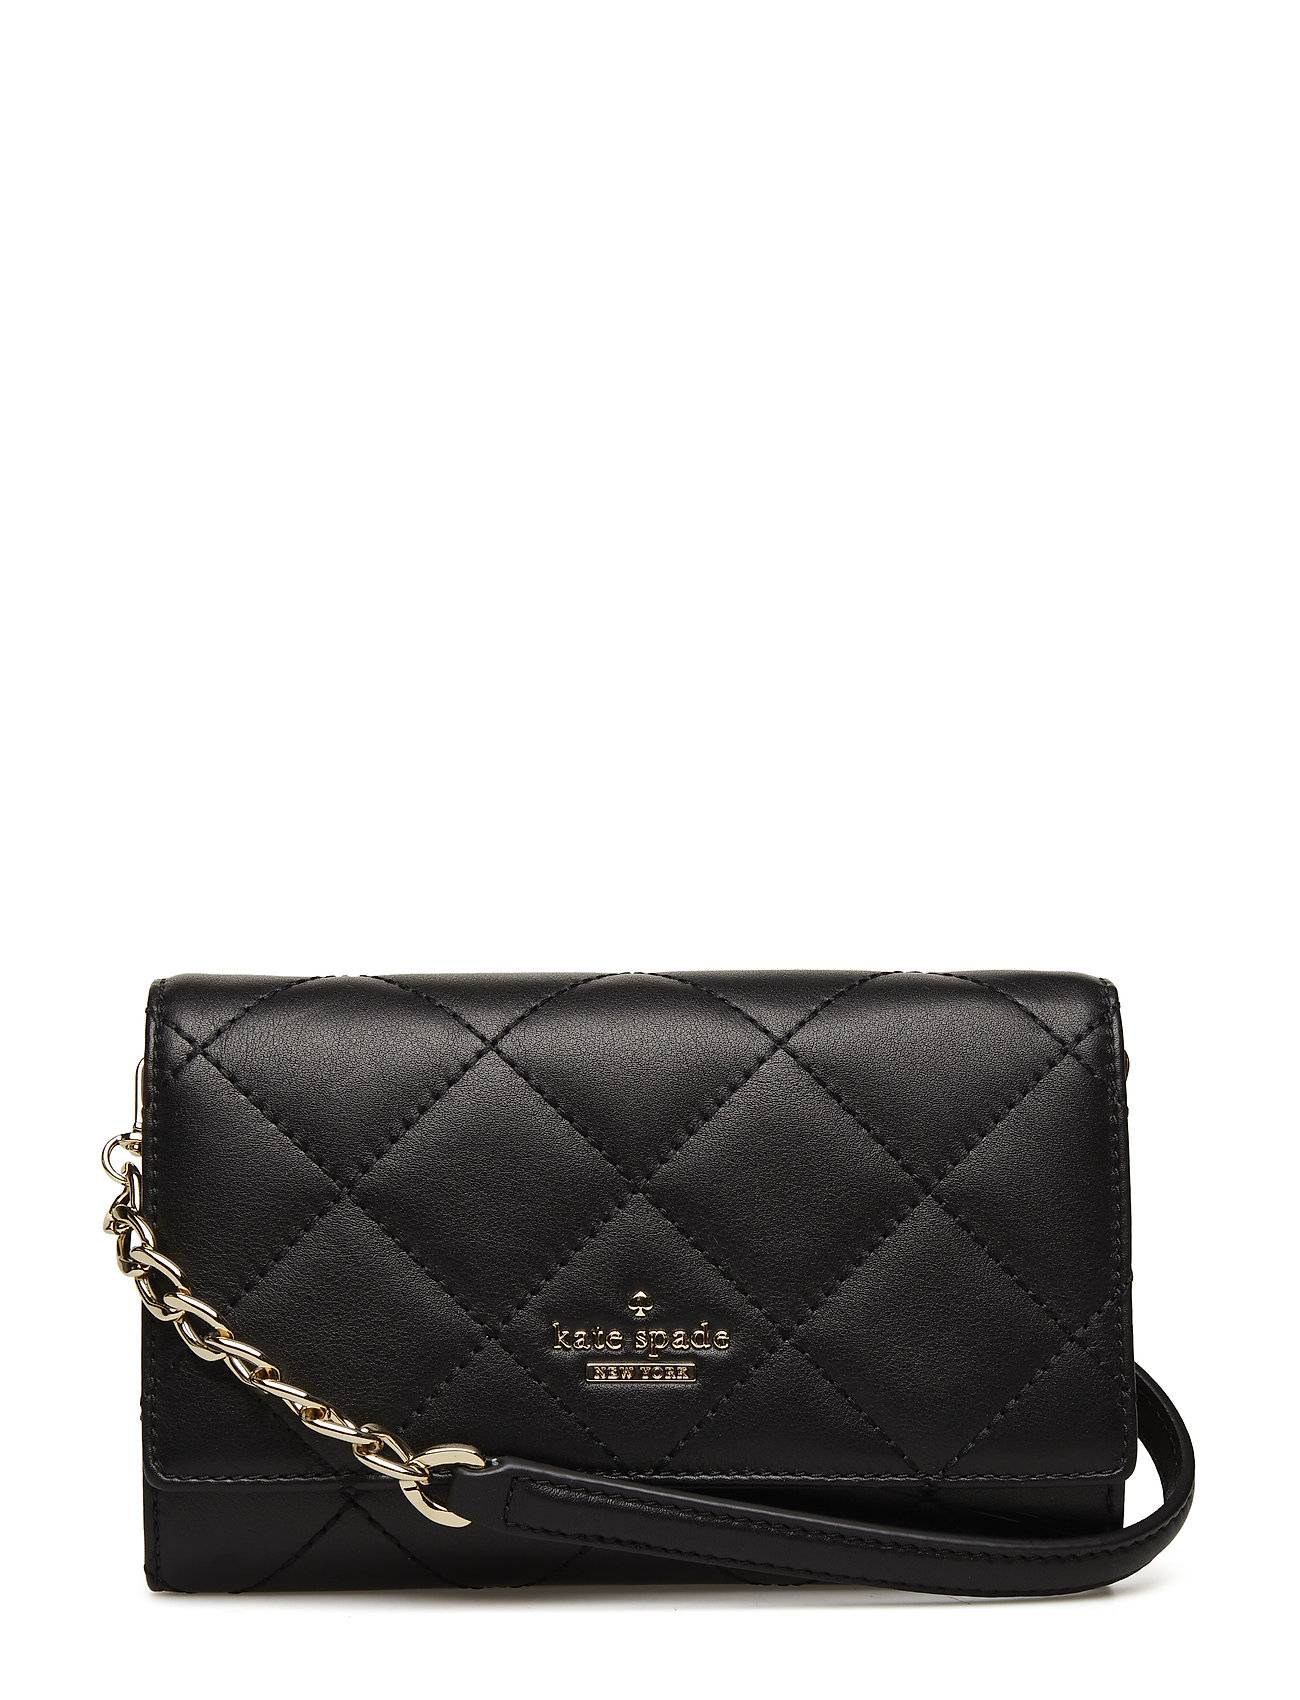 Kate Spade New York Emerson Place Agnes